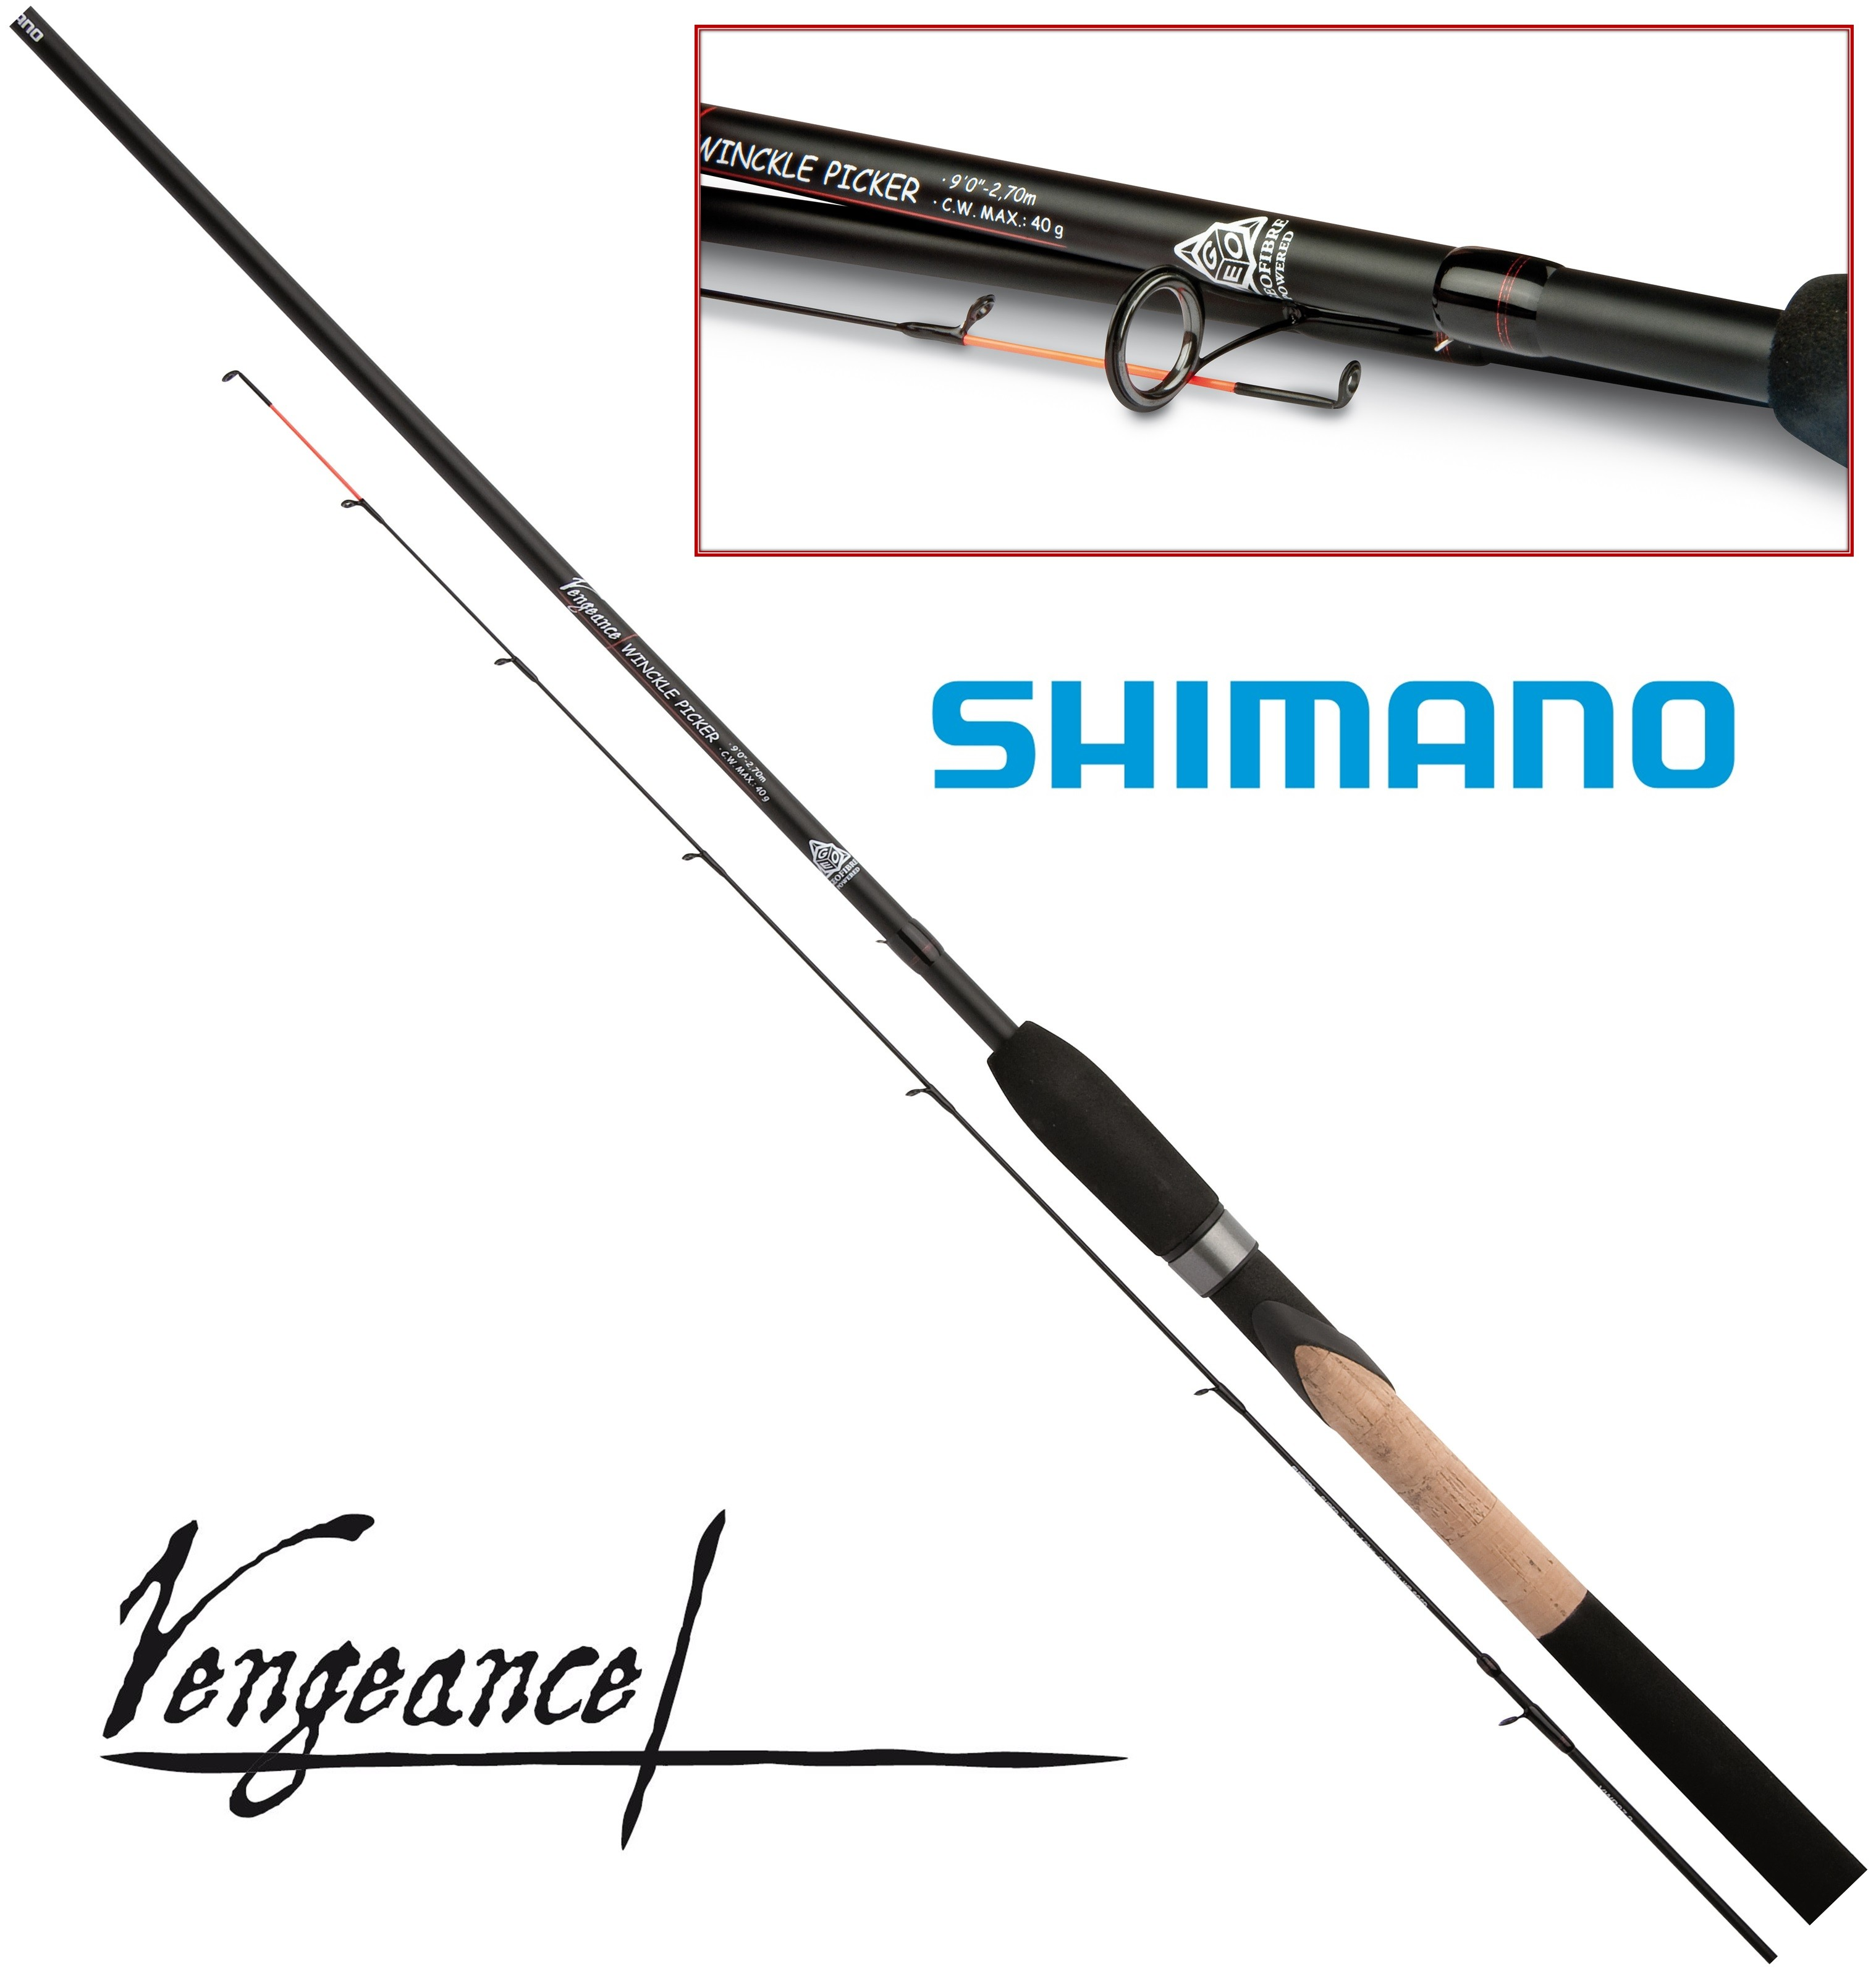 Пикерное удилище Shimano Vengeance Winckle Picker 9 ft. 2.7 м. до 40 гр